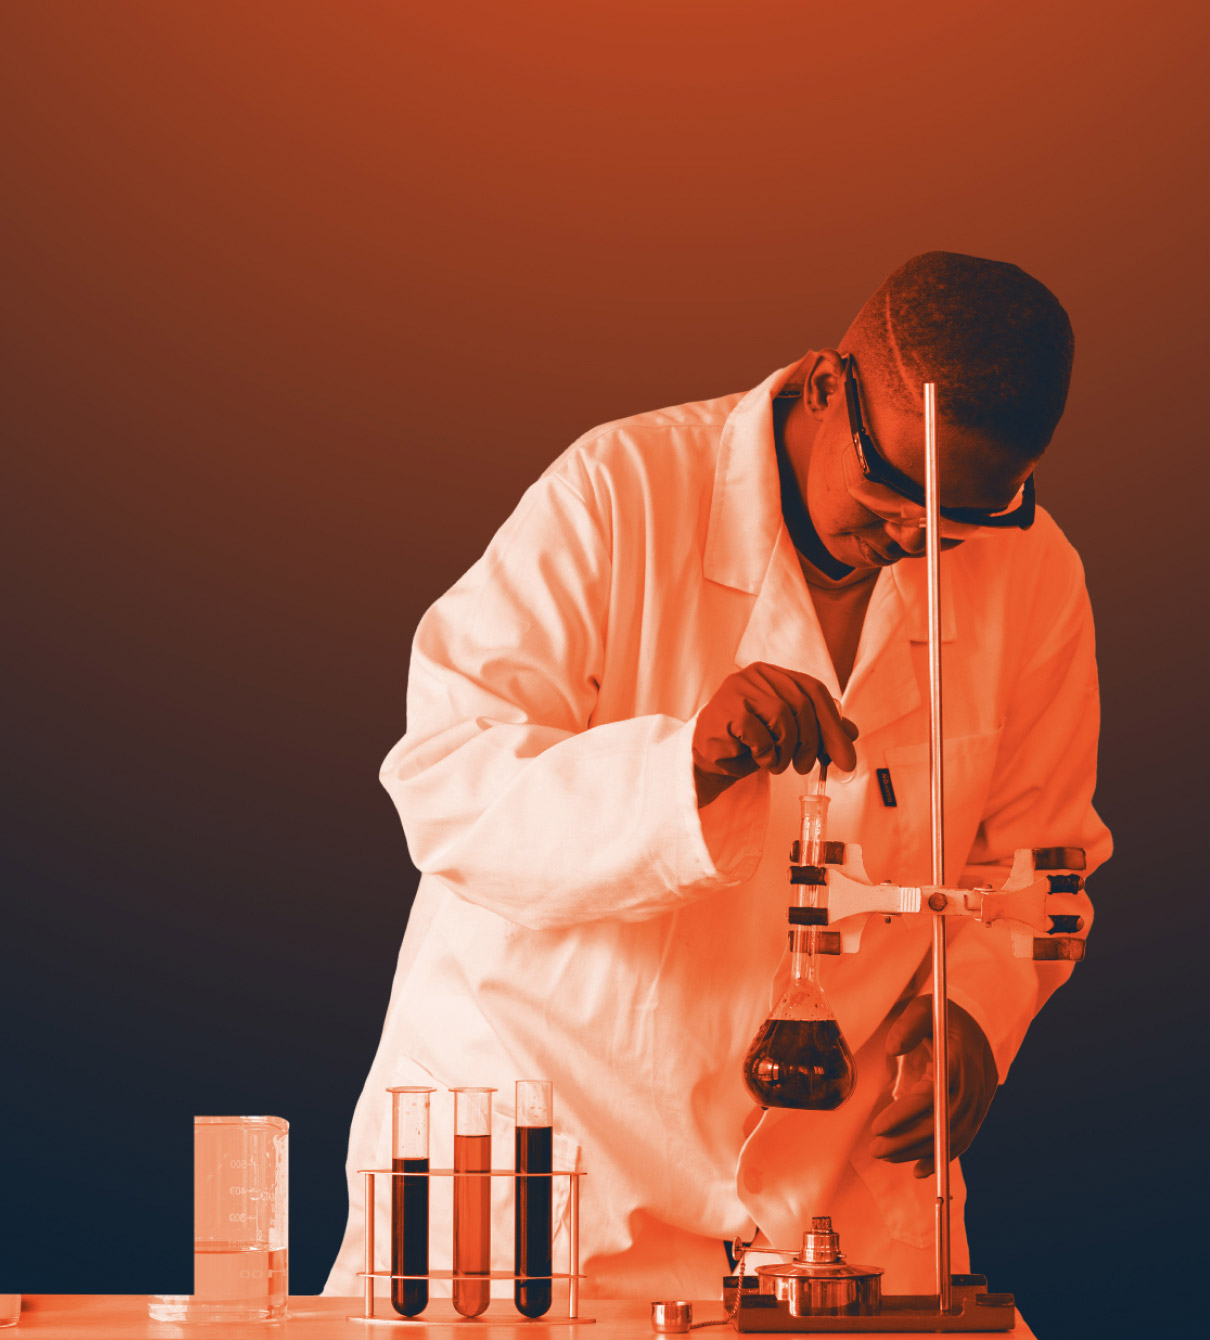 A black woman in lab coat and protective glasses using science and technological equipment.